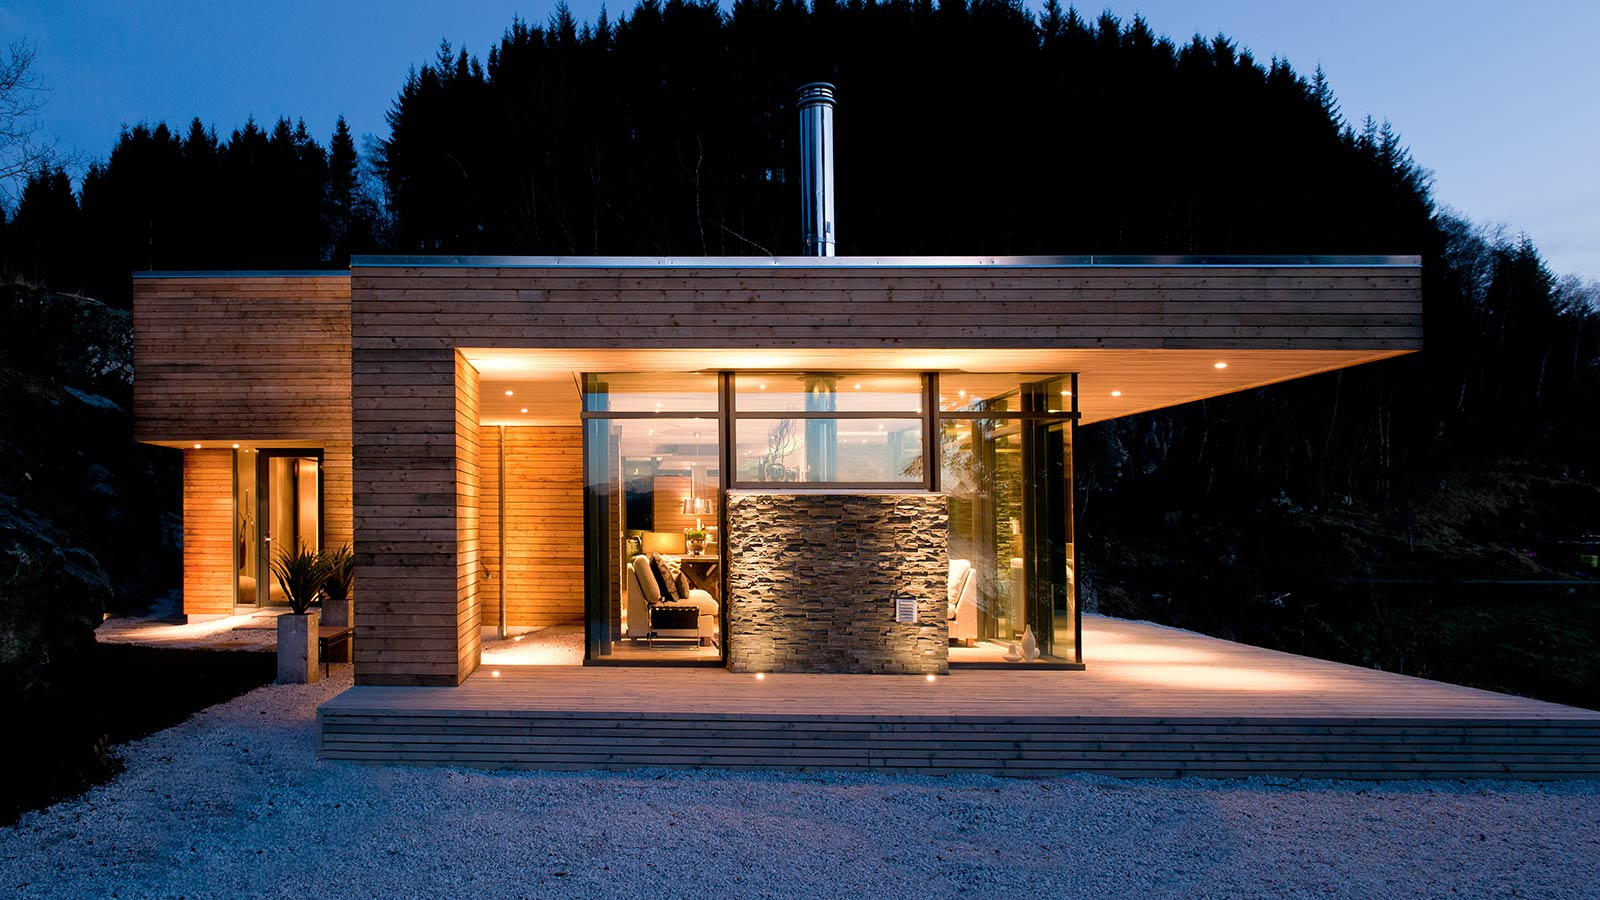 Modern cabin gj 9 in norway by gudmundur jonsson for 90s modern house